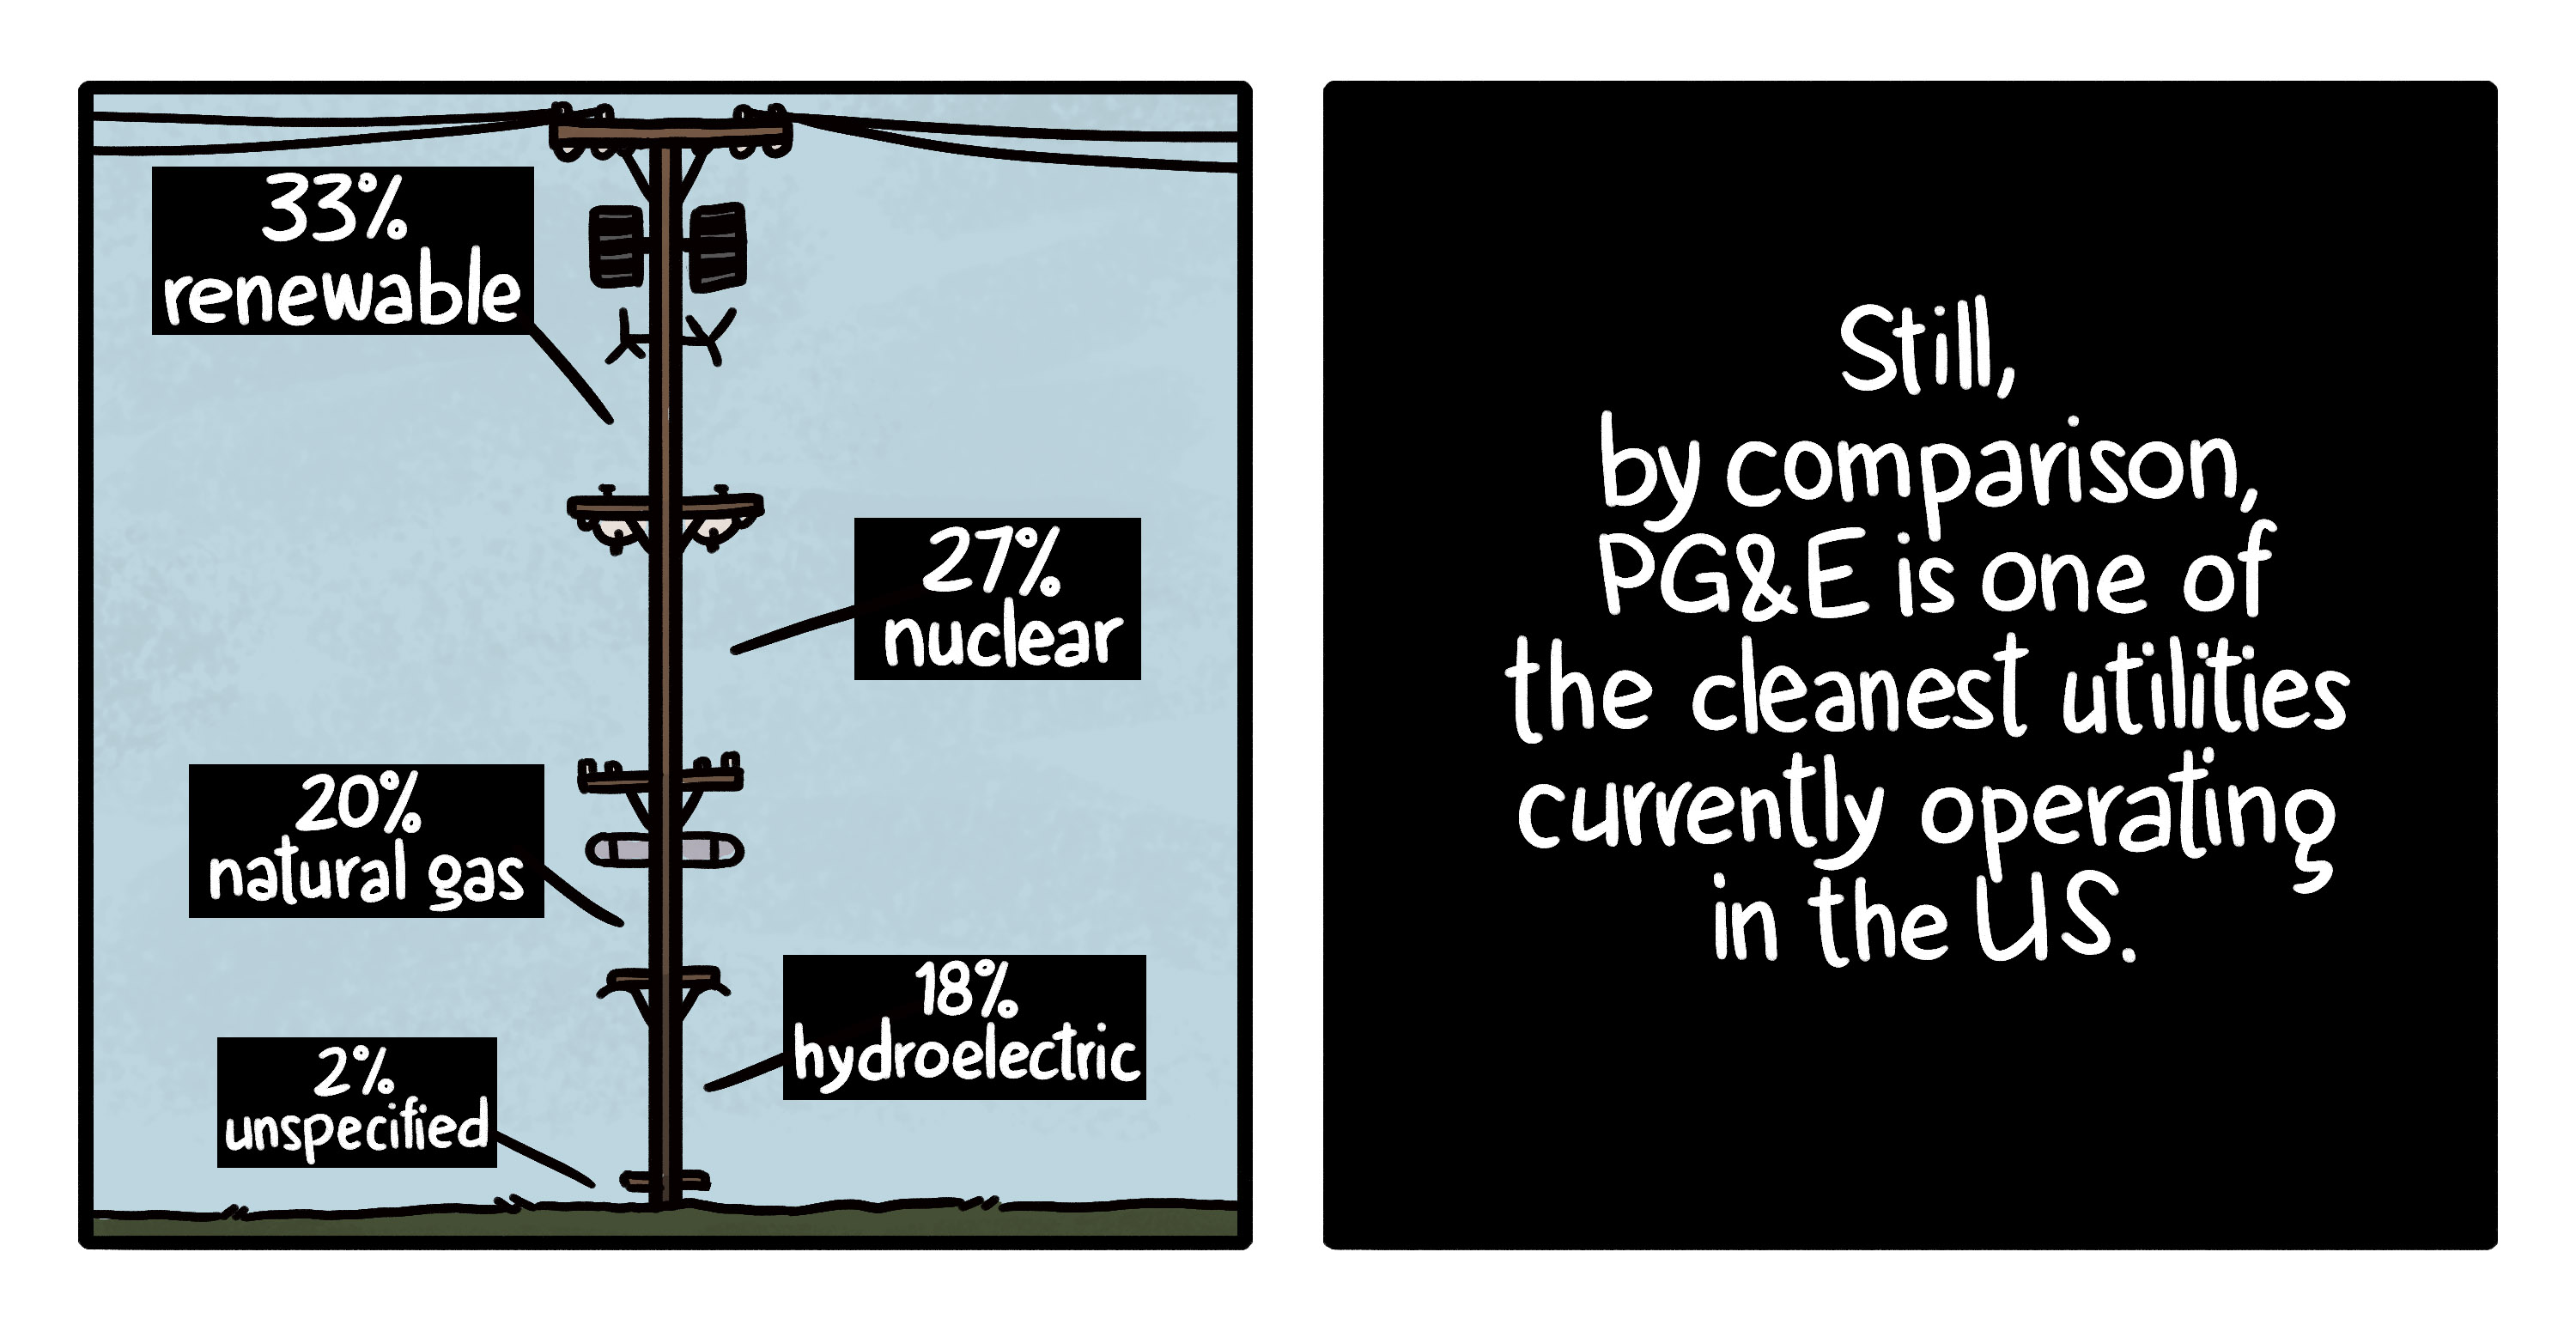 Illustration with graph showing PG&E's energy mix, which is 33% renewable, 27% nuclear, 20% natural gas, 18% hyrdroelectric, and 2% unspecified. PG&E is one of the cleanest utilities operating in the US.